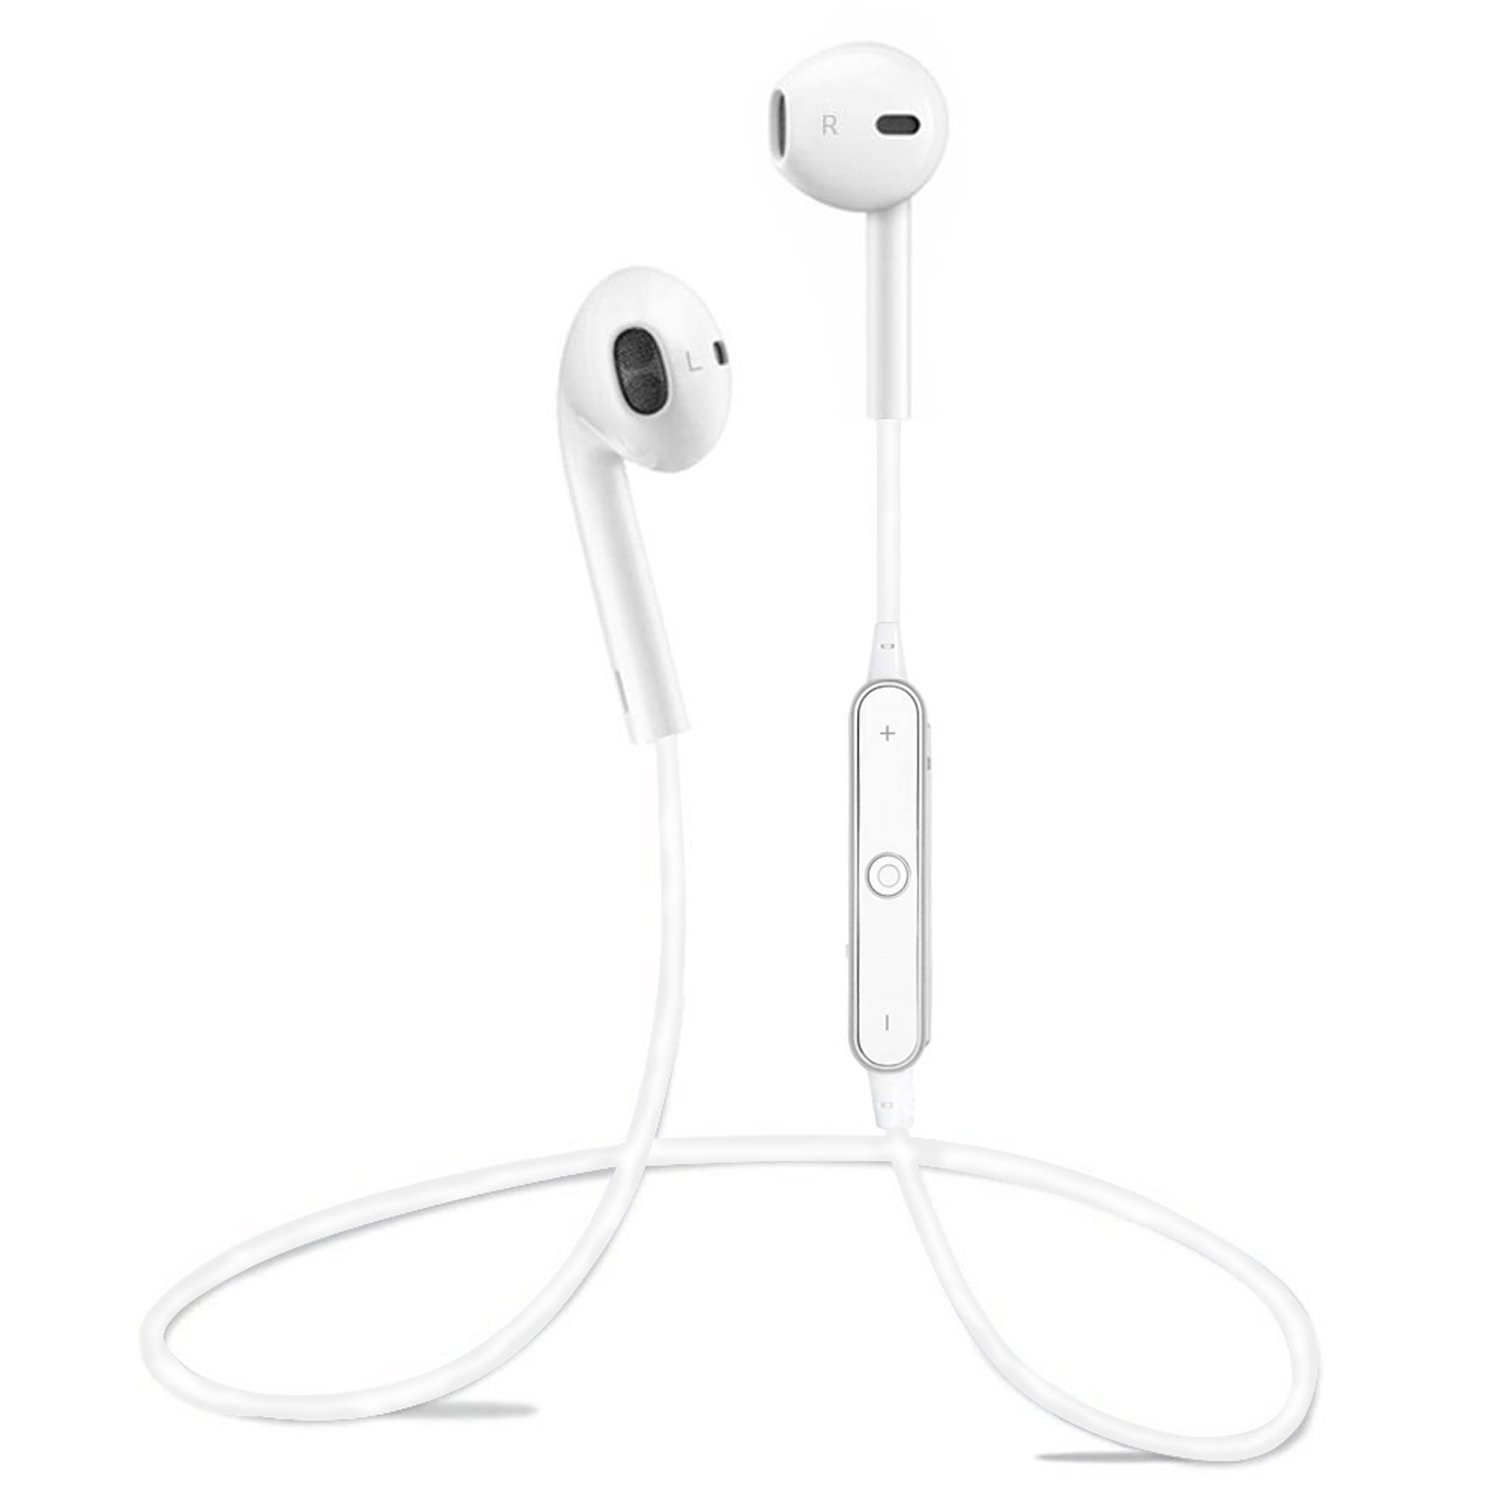 452ddb9aac0 Get Quotations · BROOKE Upgraded S6 Bluetooth Headphones,Wireless Headphones  Bluetooth 4.1 Earbuds with Mic Sport Stereo Headset